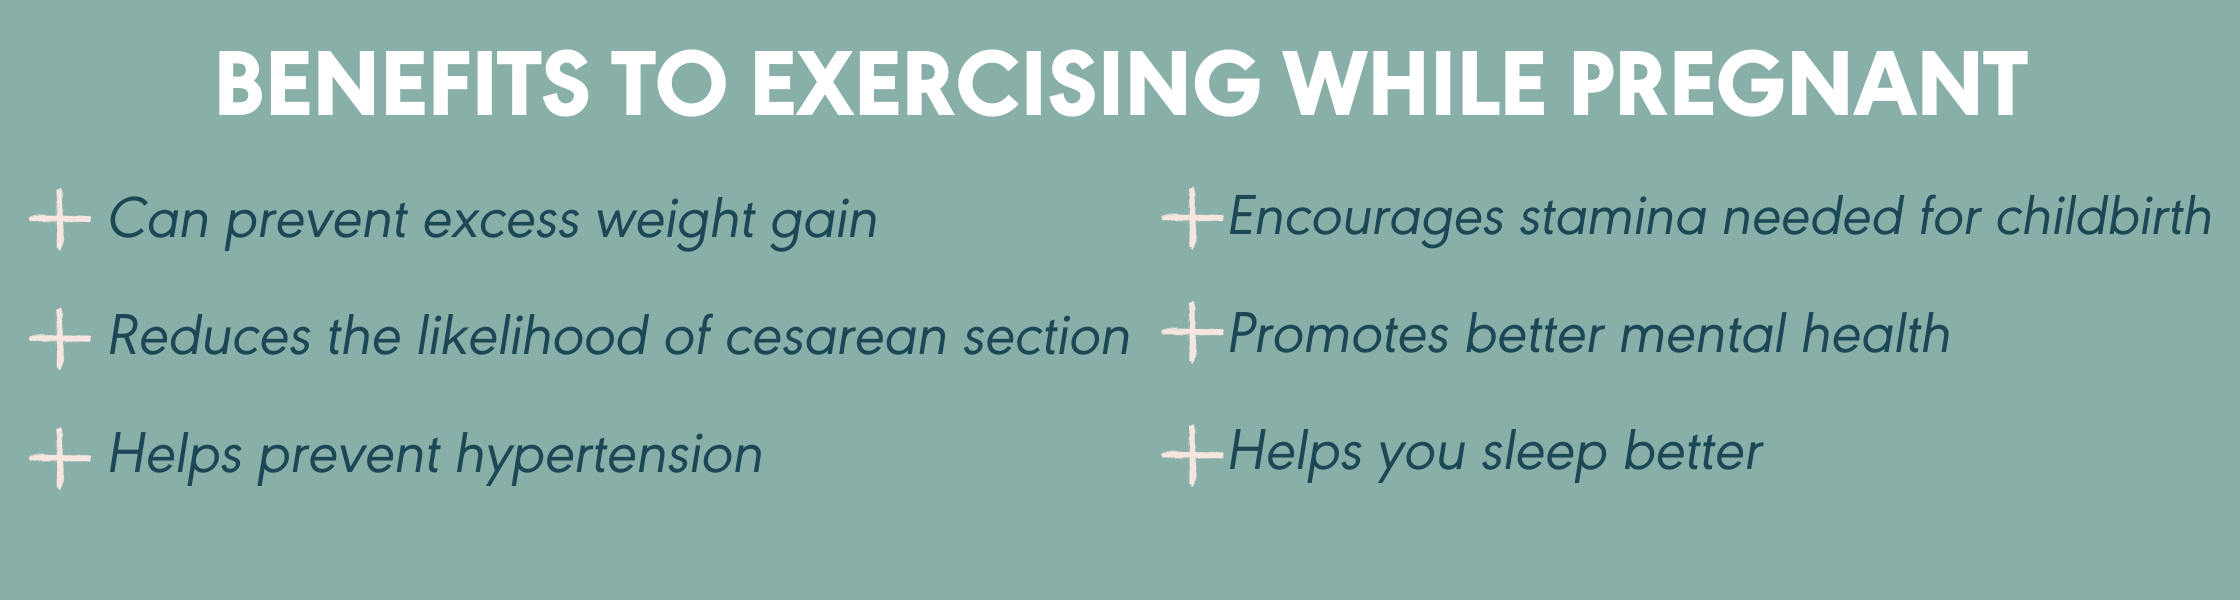 benefits of exercising while pregnant